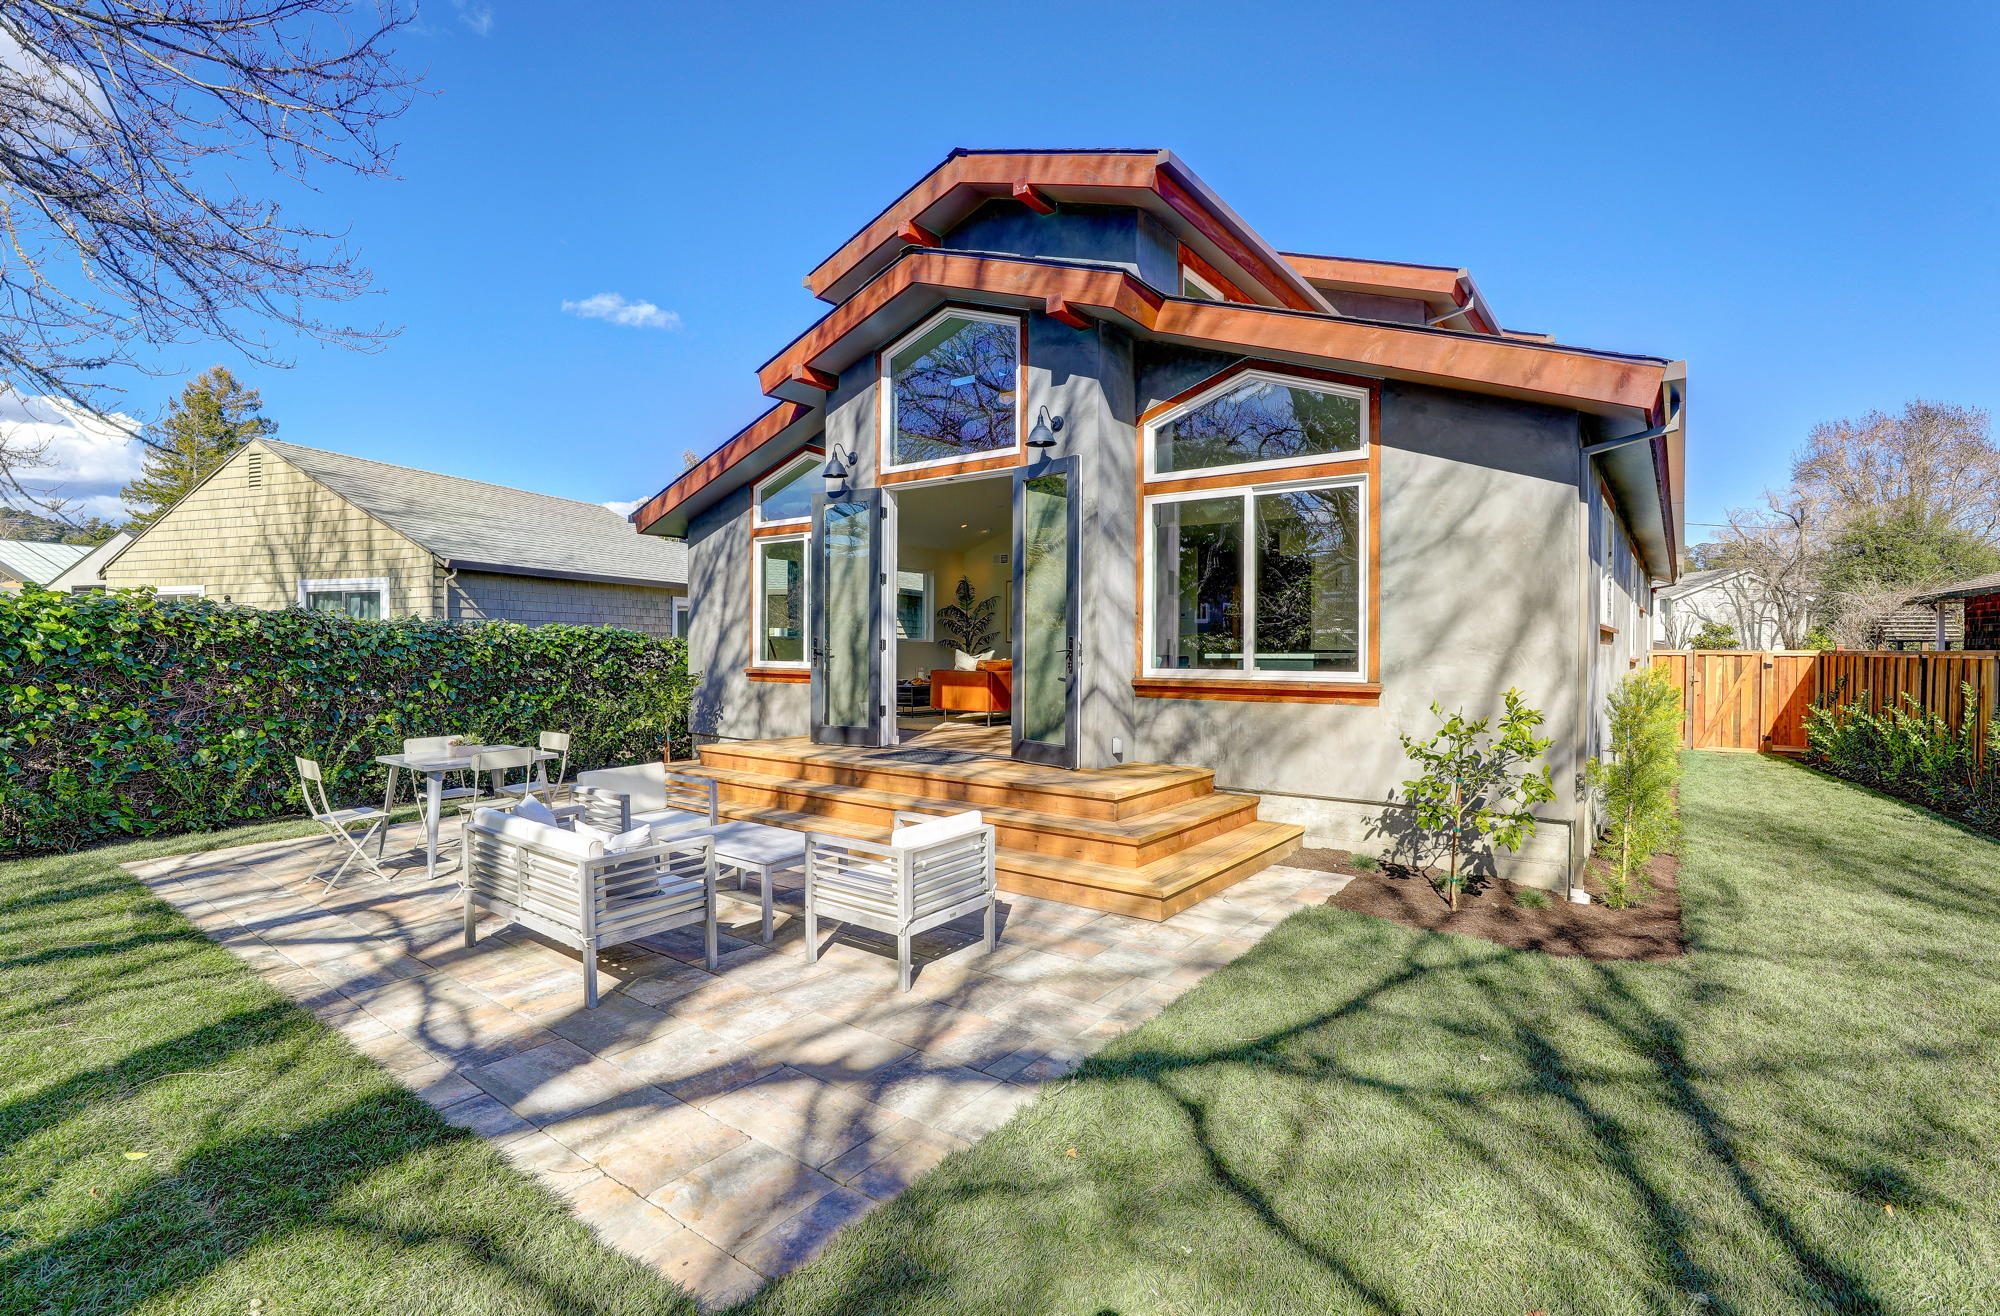 38 Ryan Avenue, Mill Valley - Sycamore Park Homes for sale - 57- Listed by Team Own Marin with Compass Real Estate.jpg